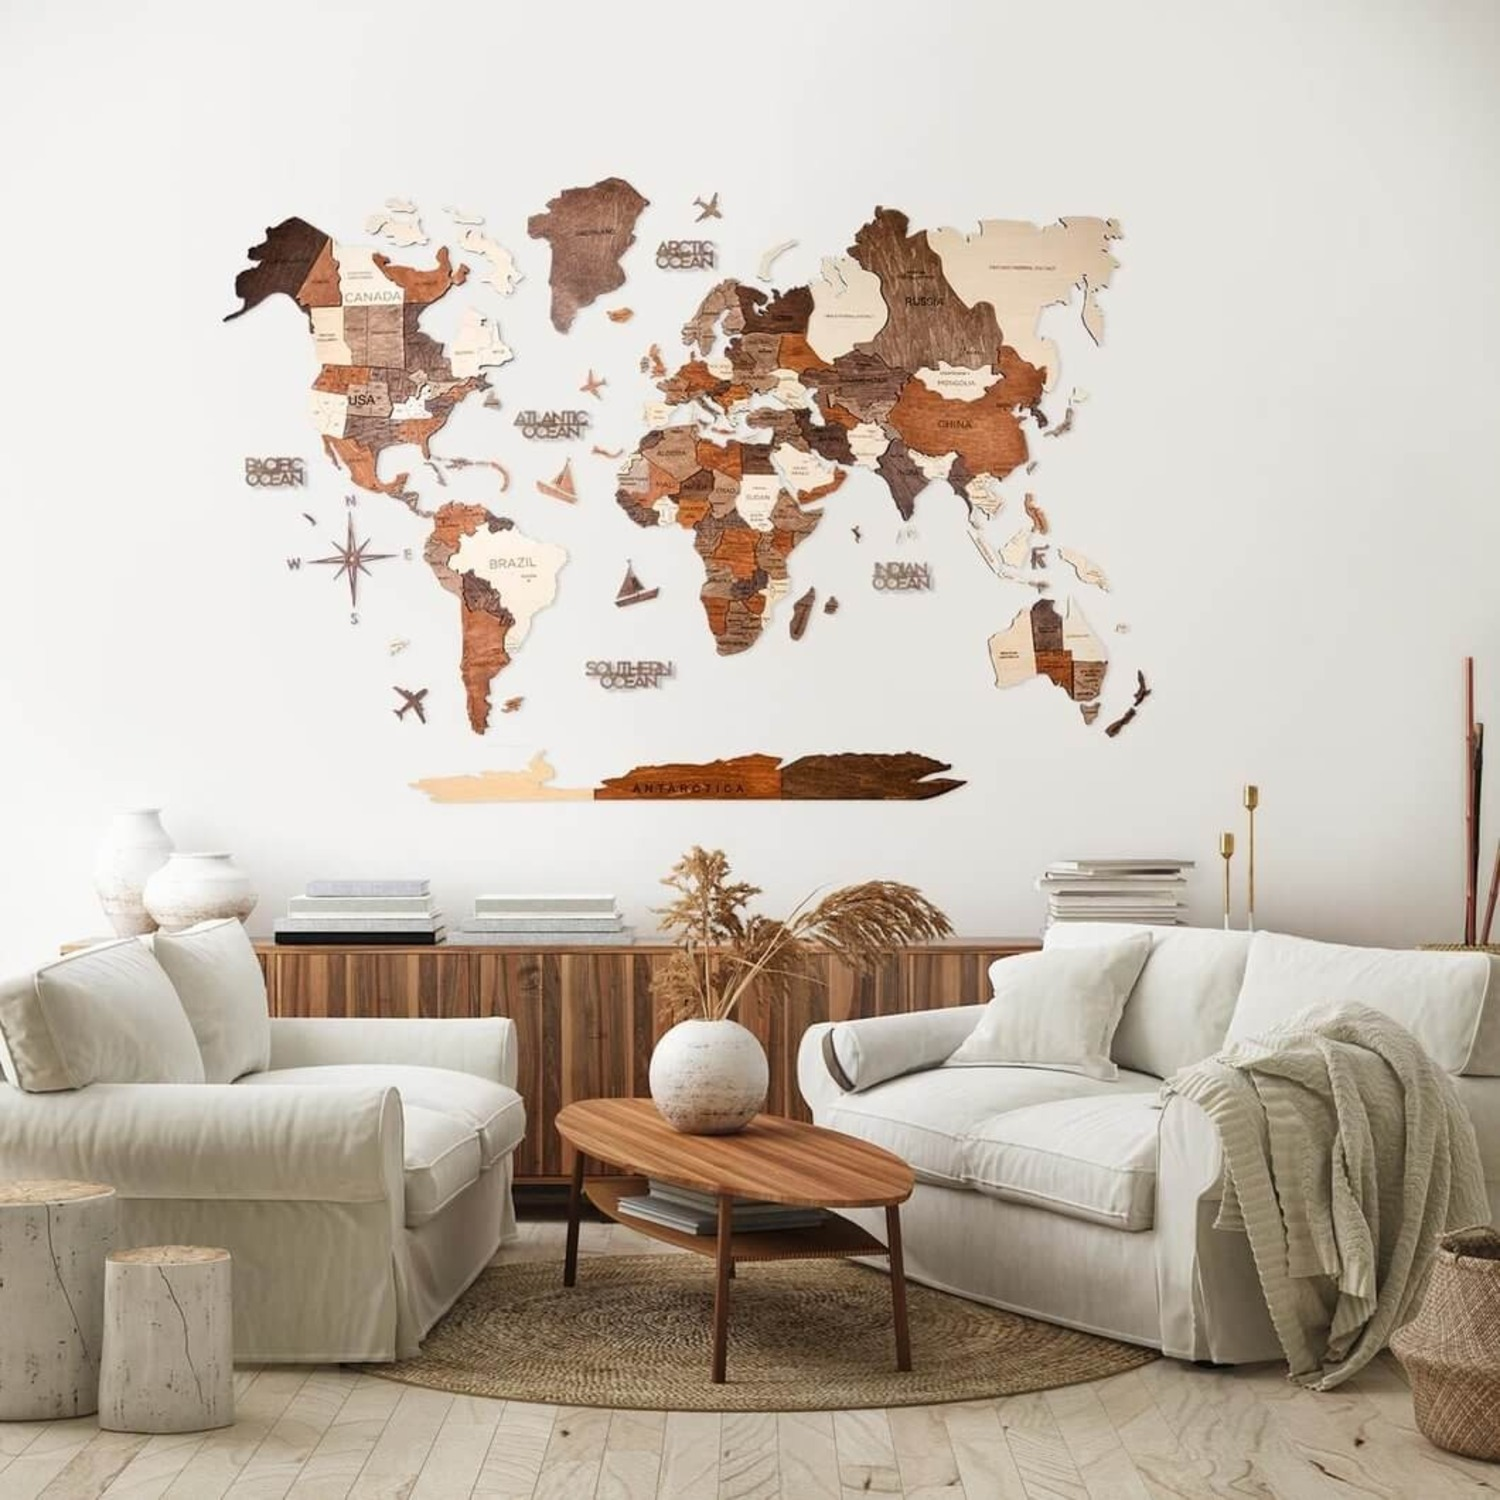 3D Wooden World Map Multicolor - image-1